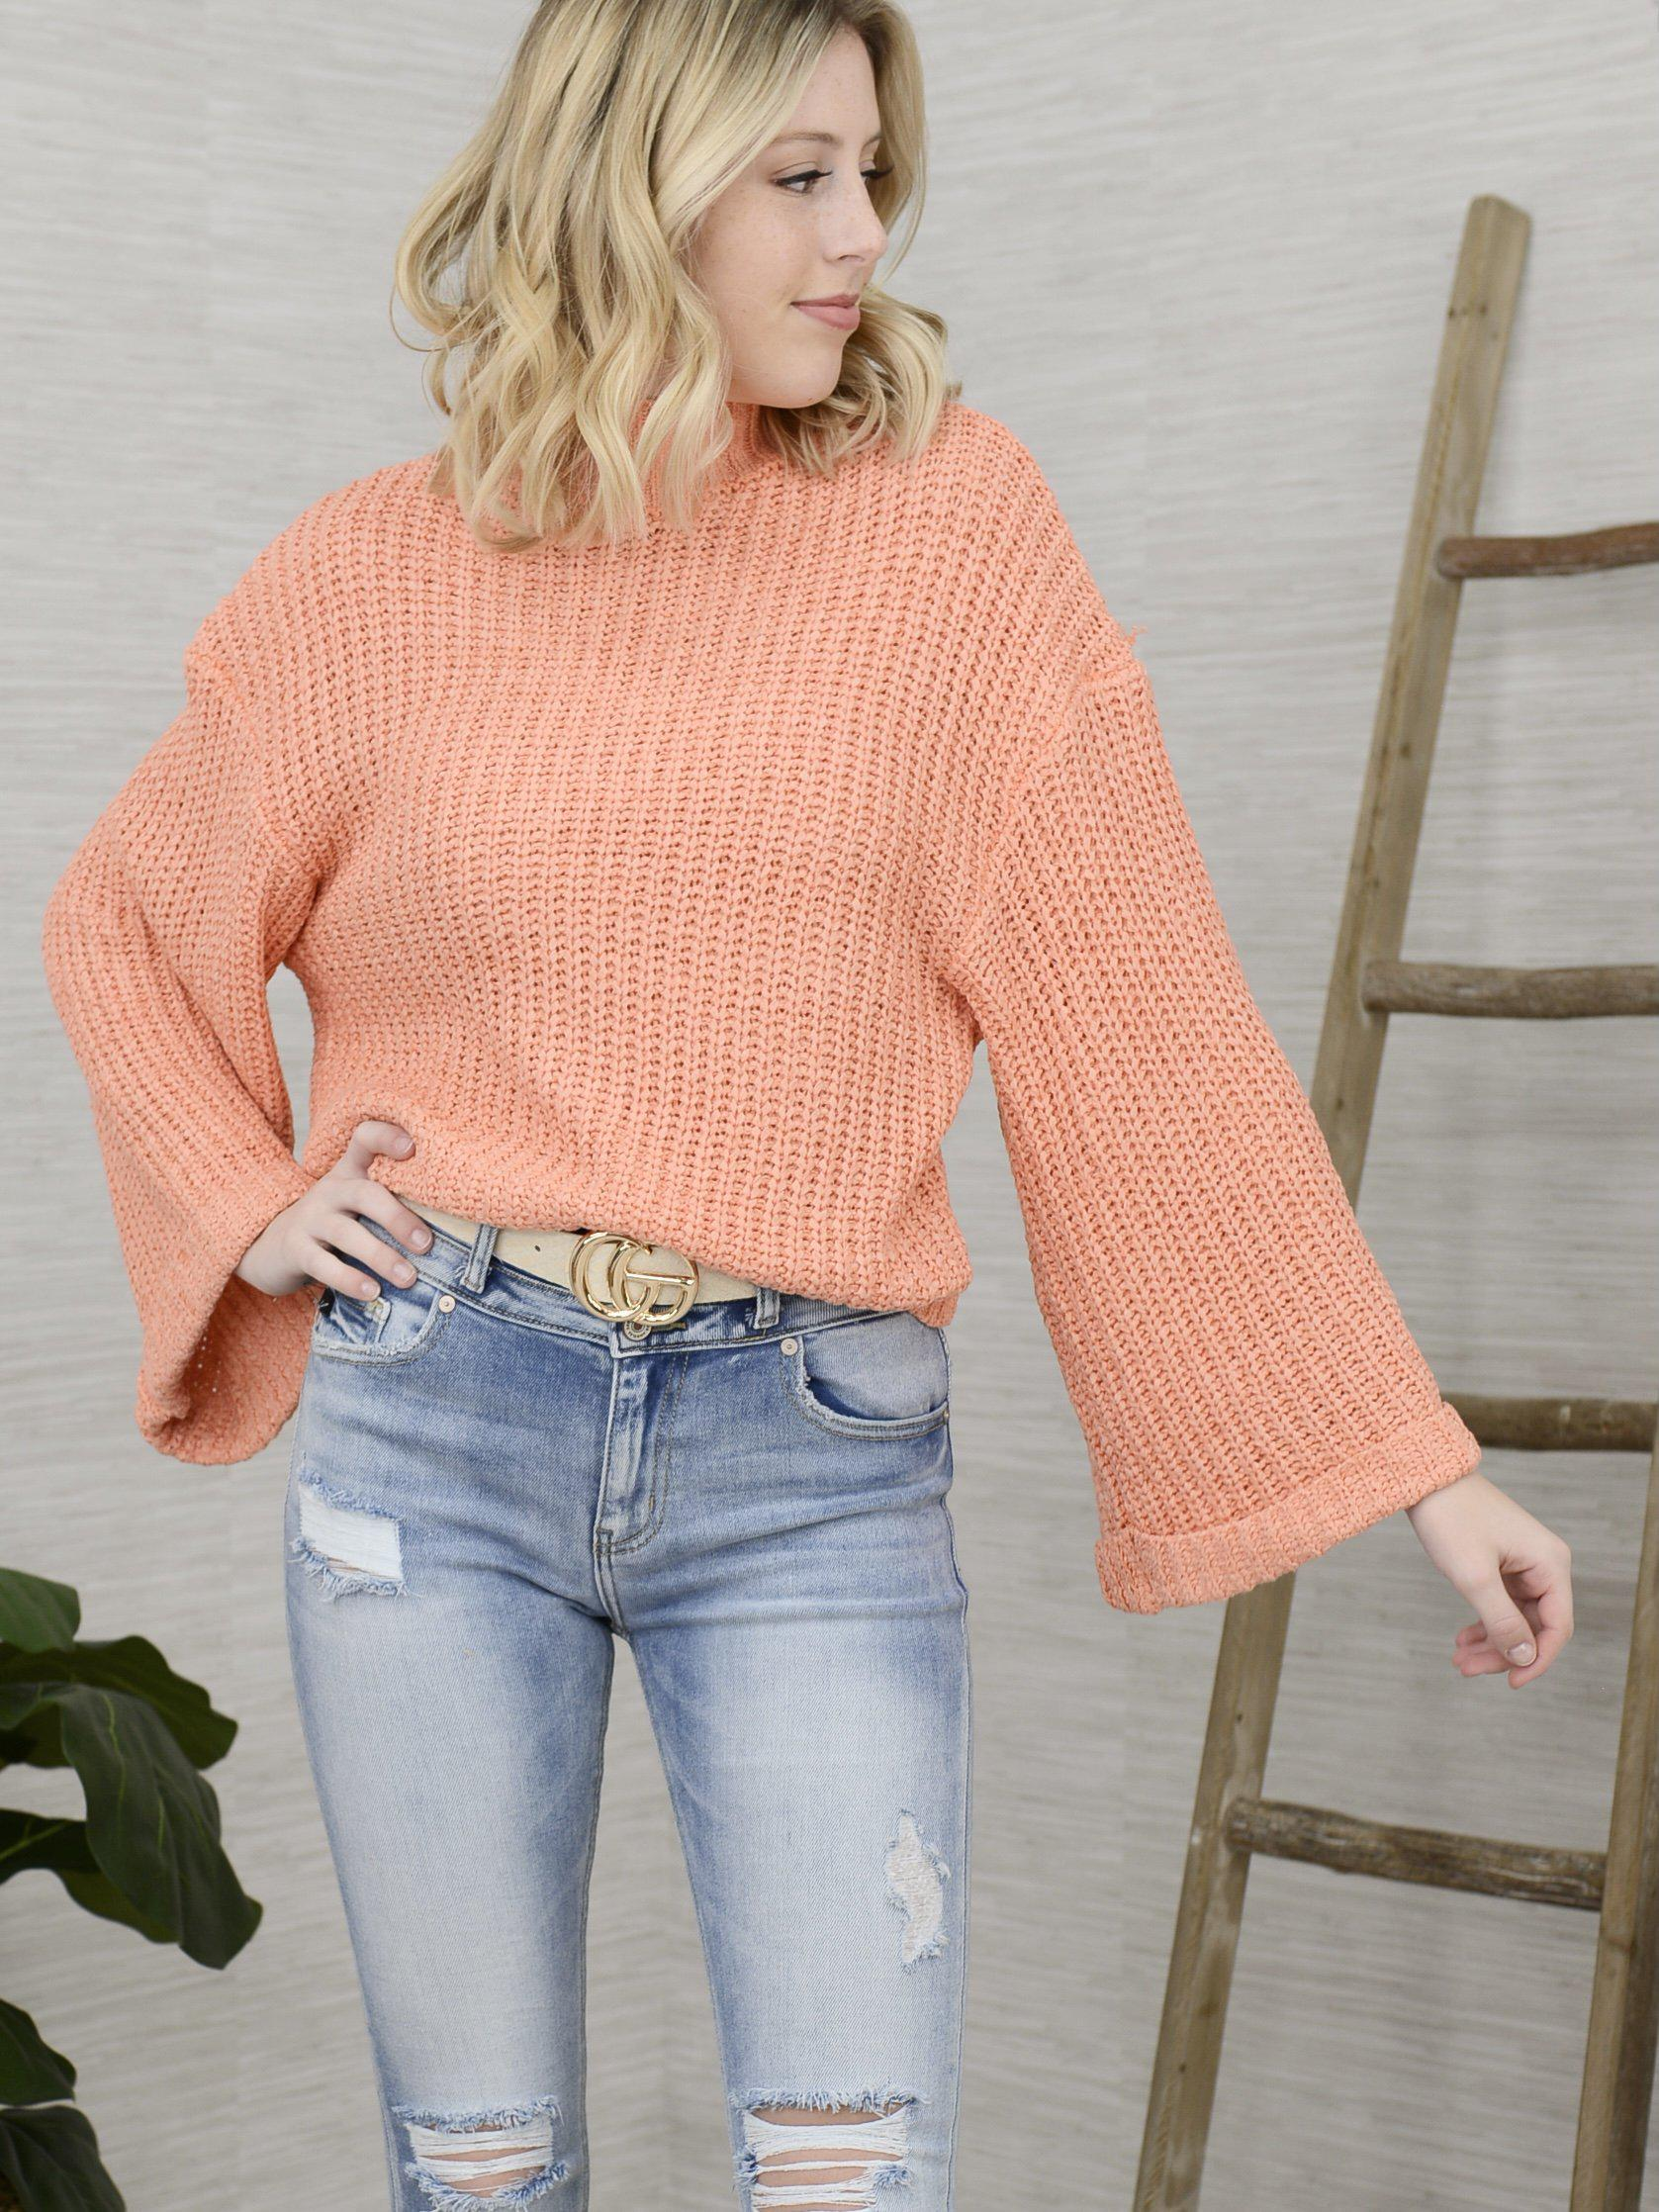 Simply Happy Sweater-Women's -New Arrivals-Runway Seven